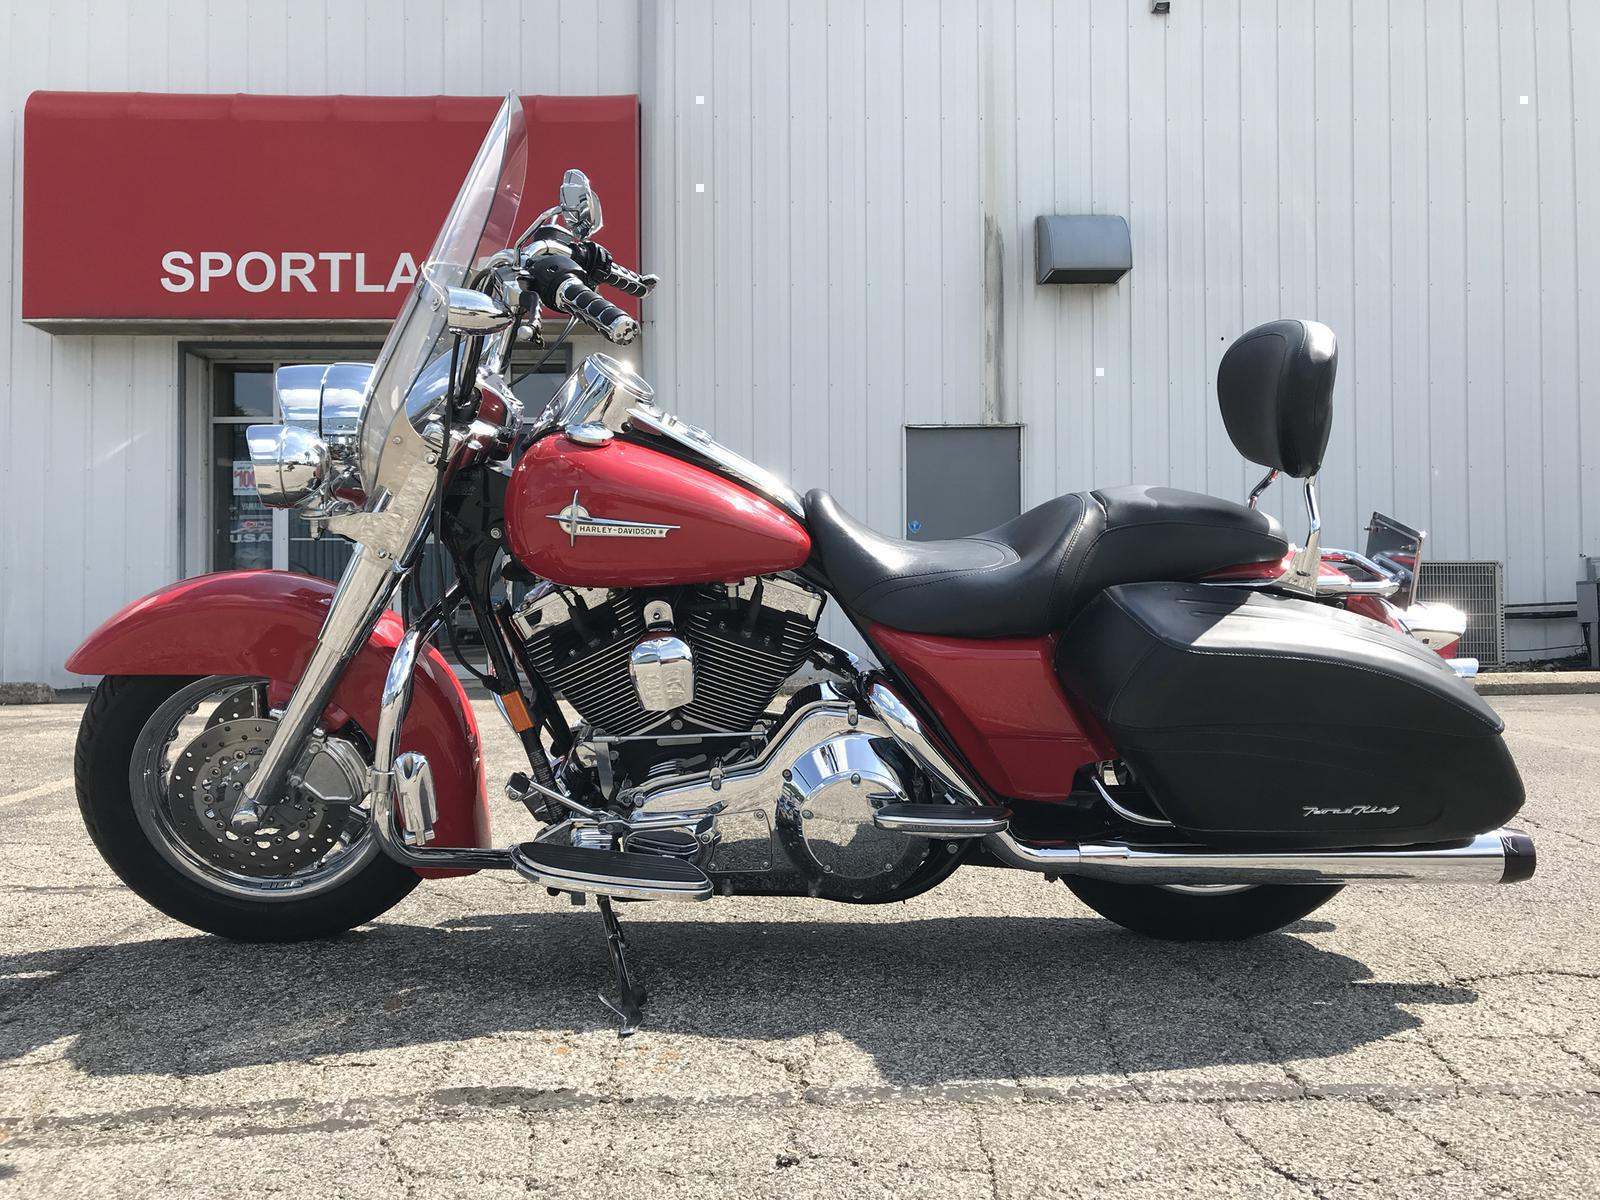 2006 Harley Davidson FLHRCI ROAD KING CLASSIC for sale in Urbana